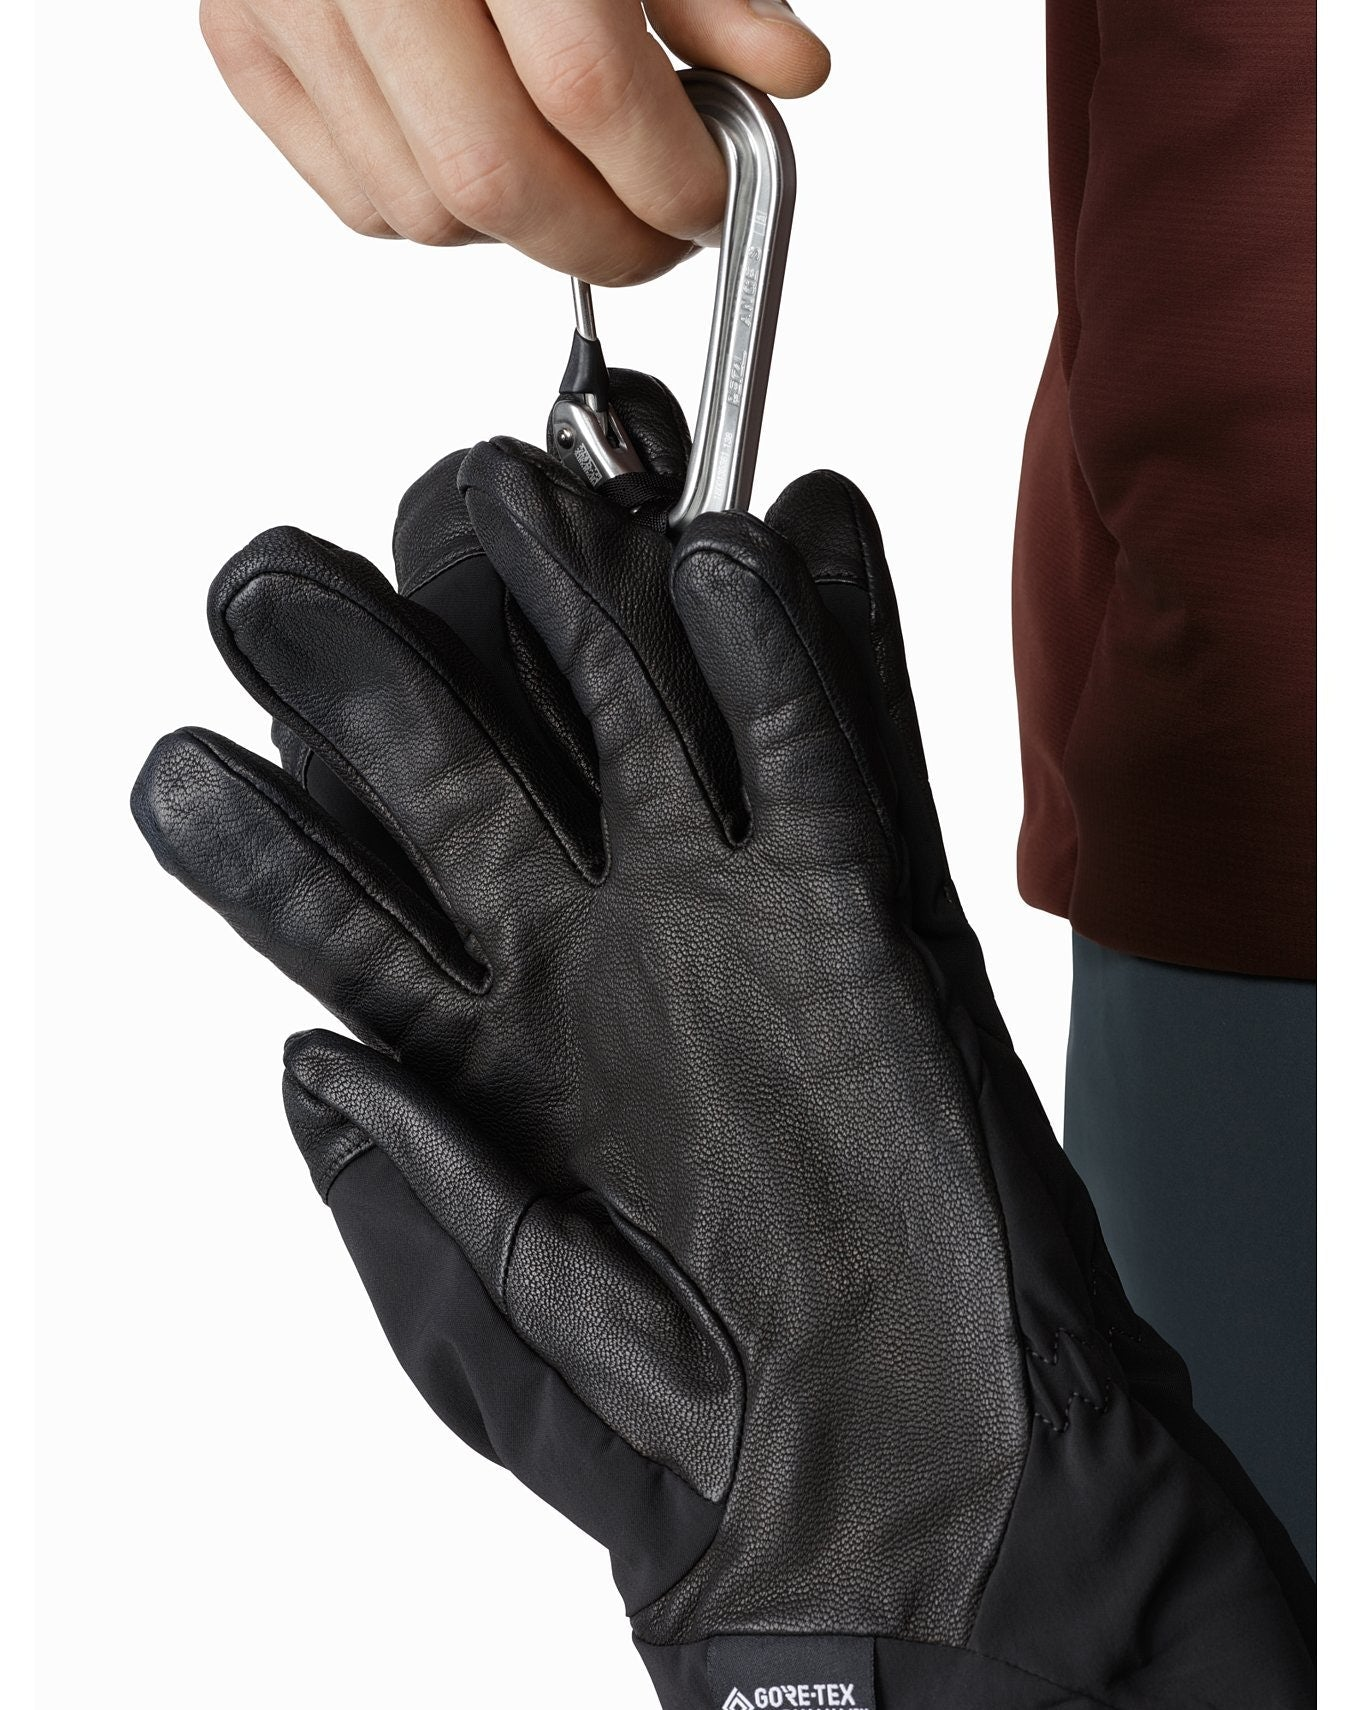 ARC'TERYX M'S GLOVES VENTA AR GLOVE